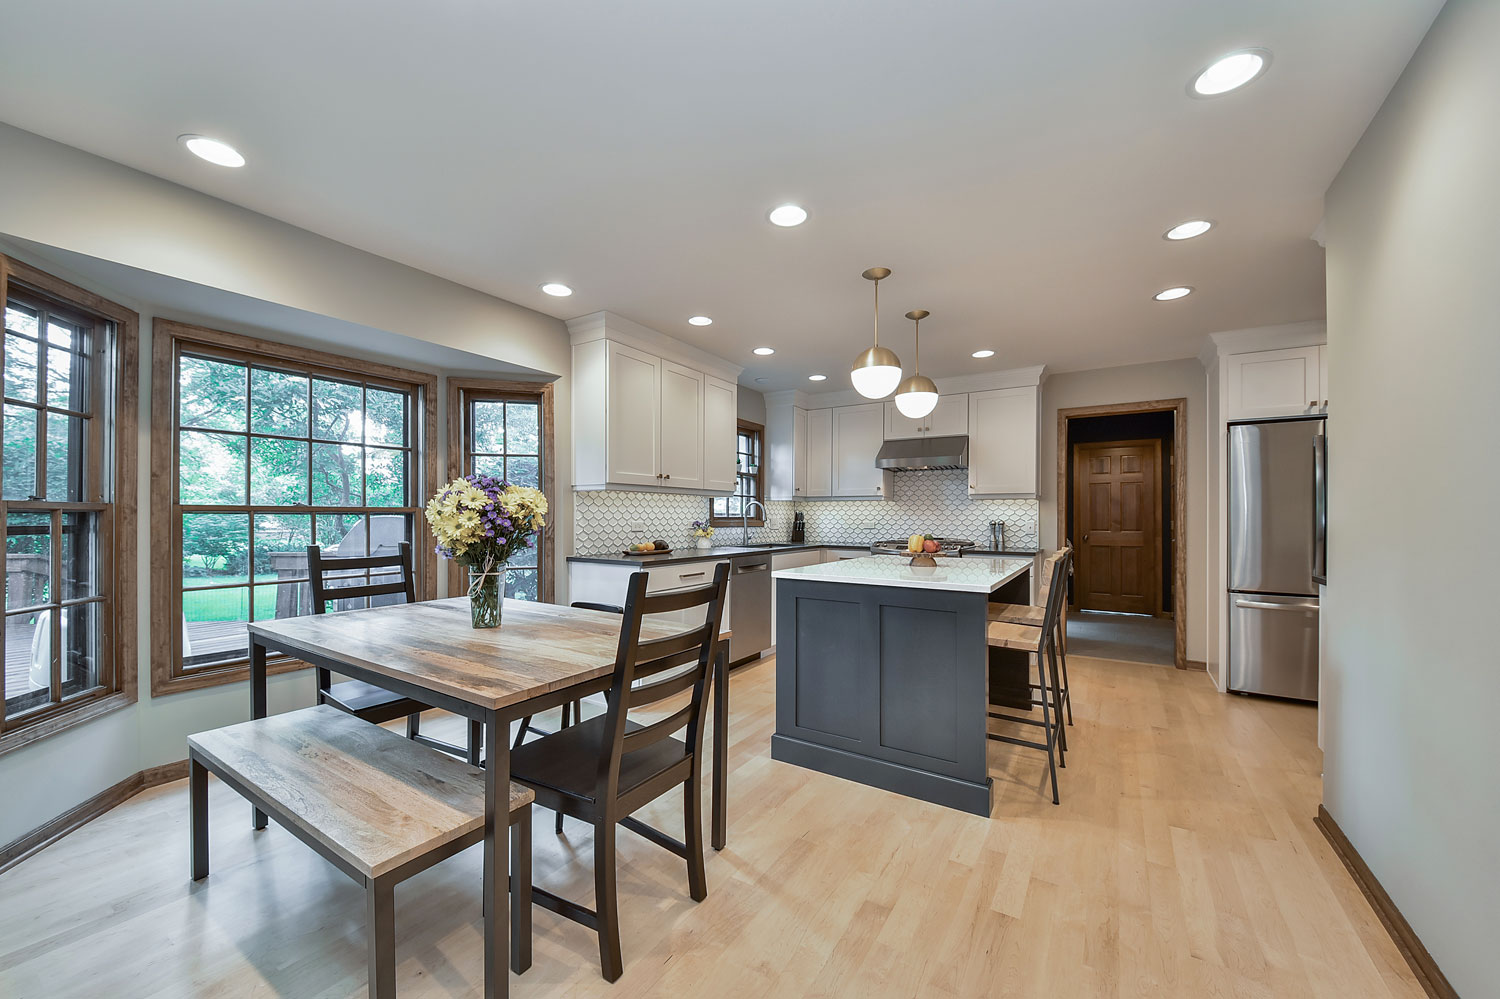 Justin & Carina's Kitchen Remodel Pictures | Home ...